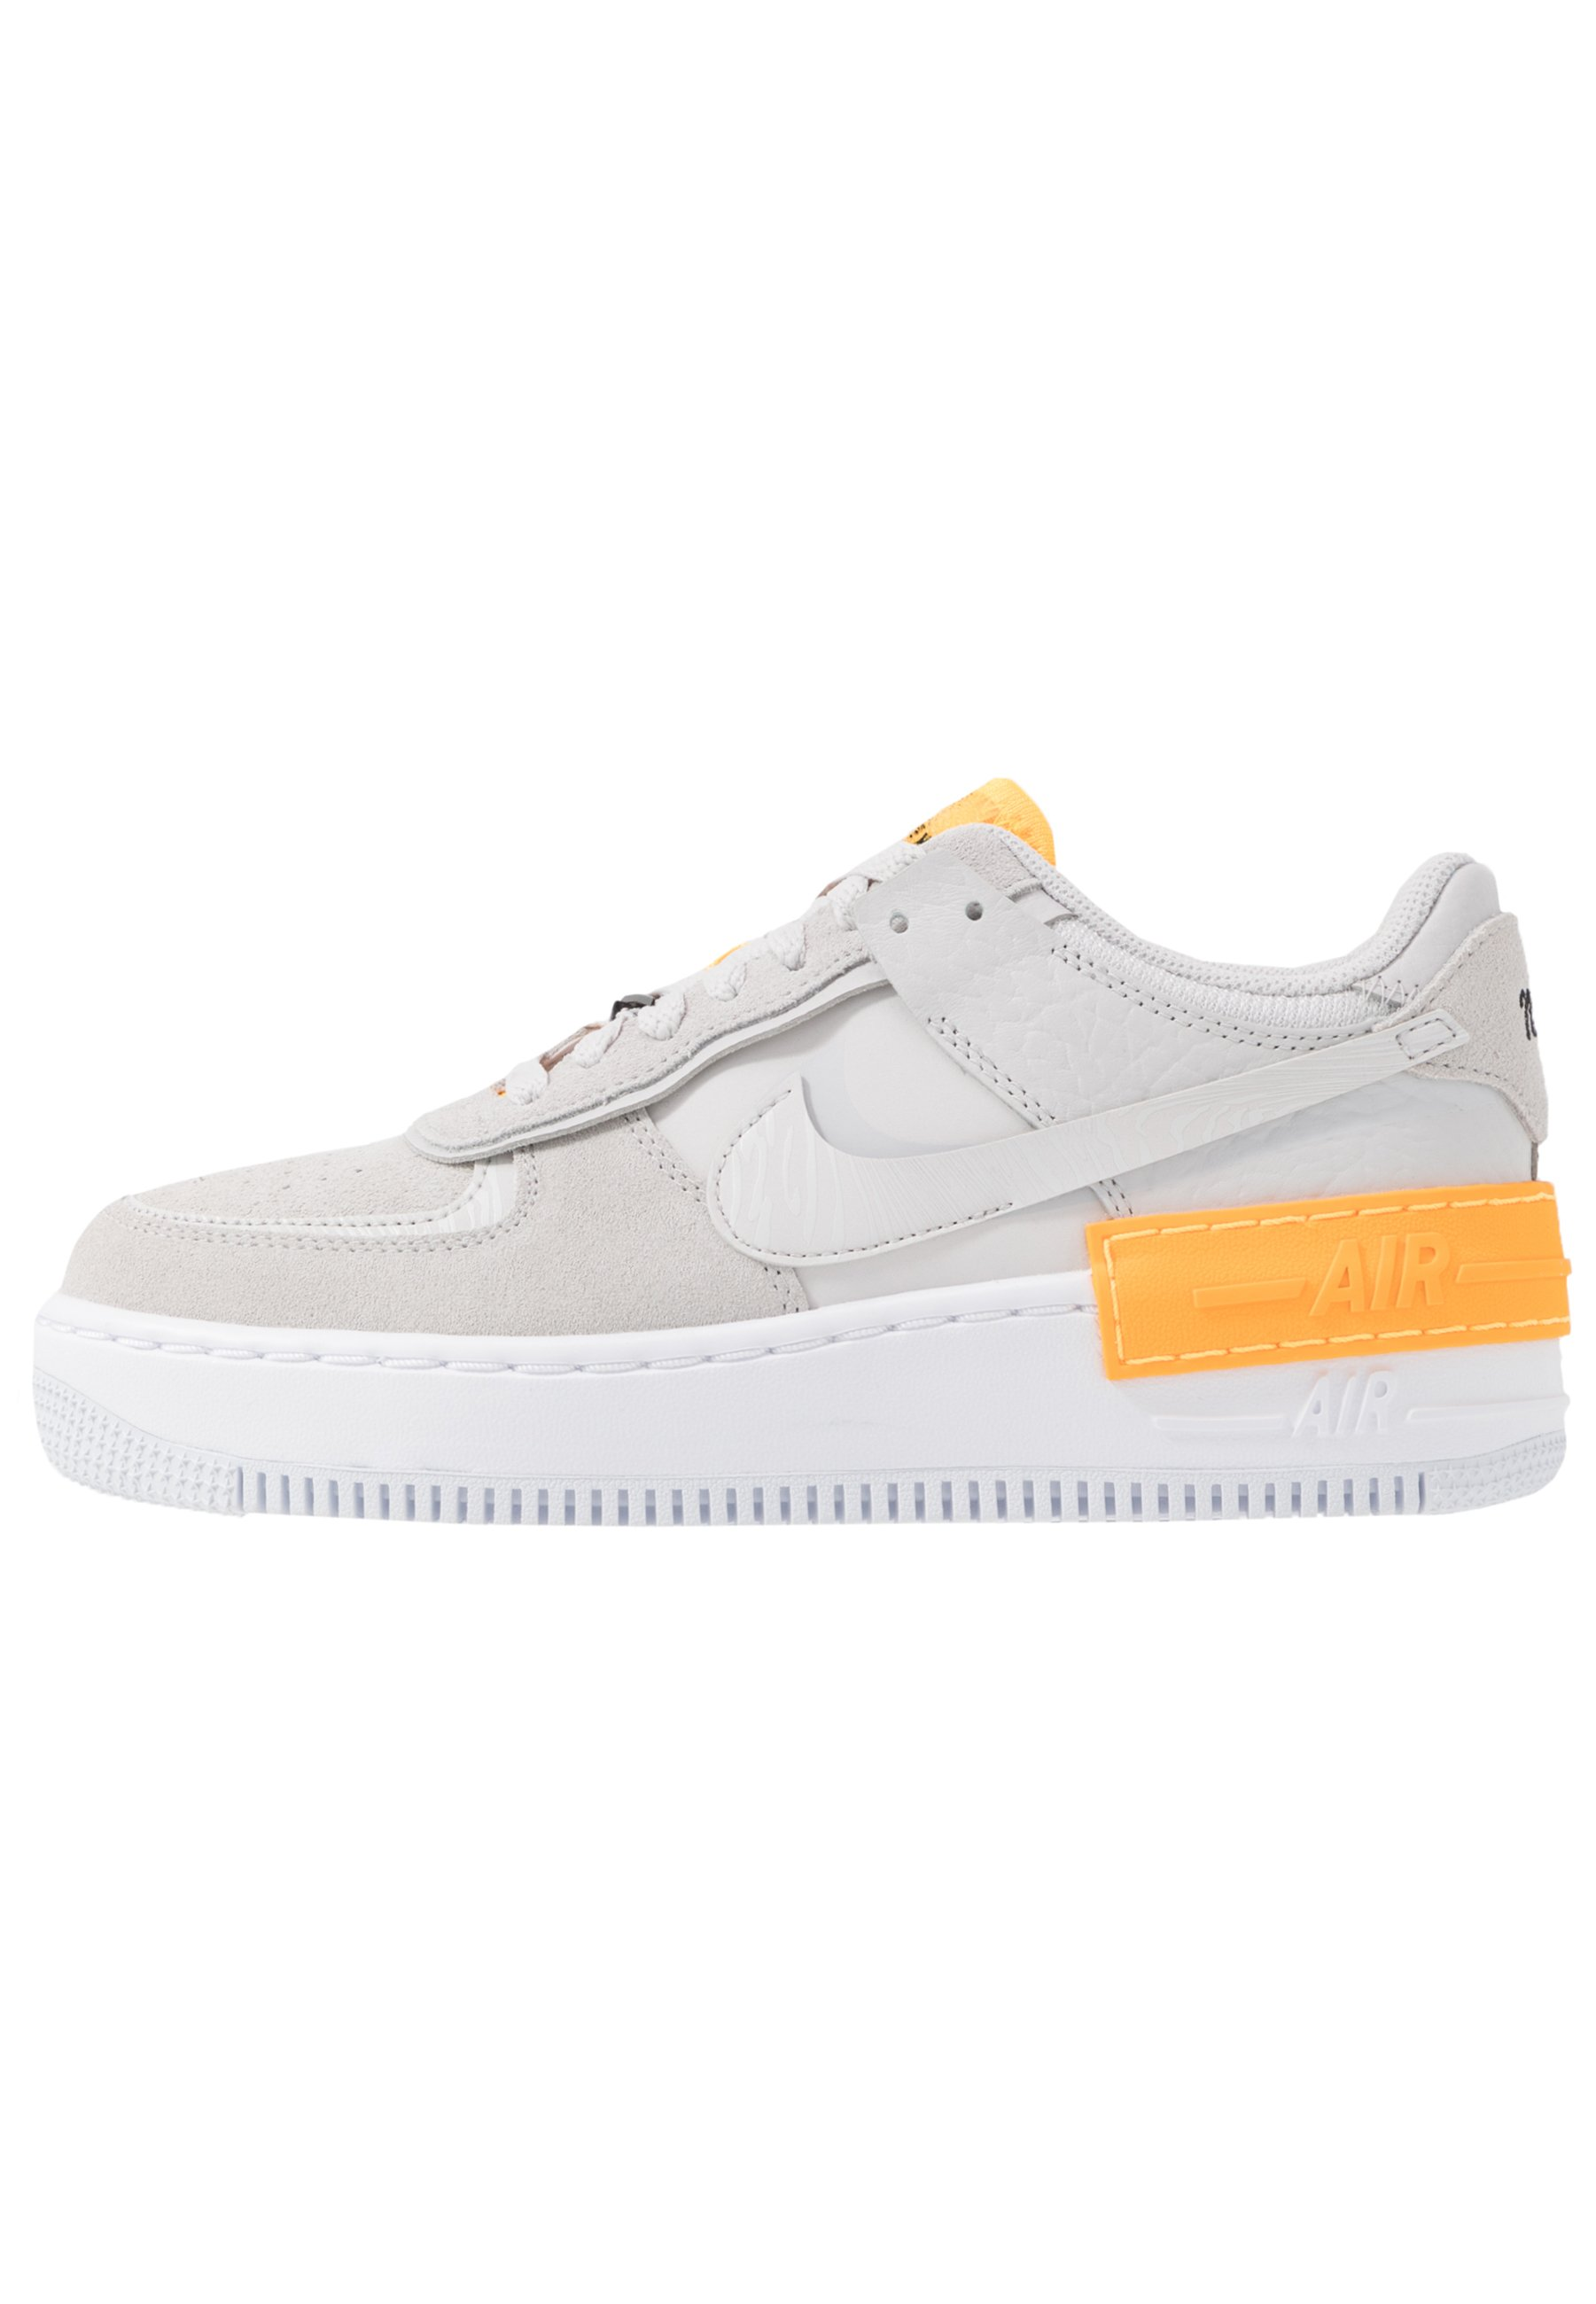 air force 1 basse oro e bianco